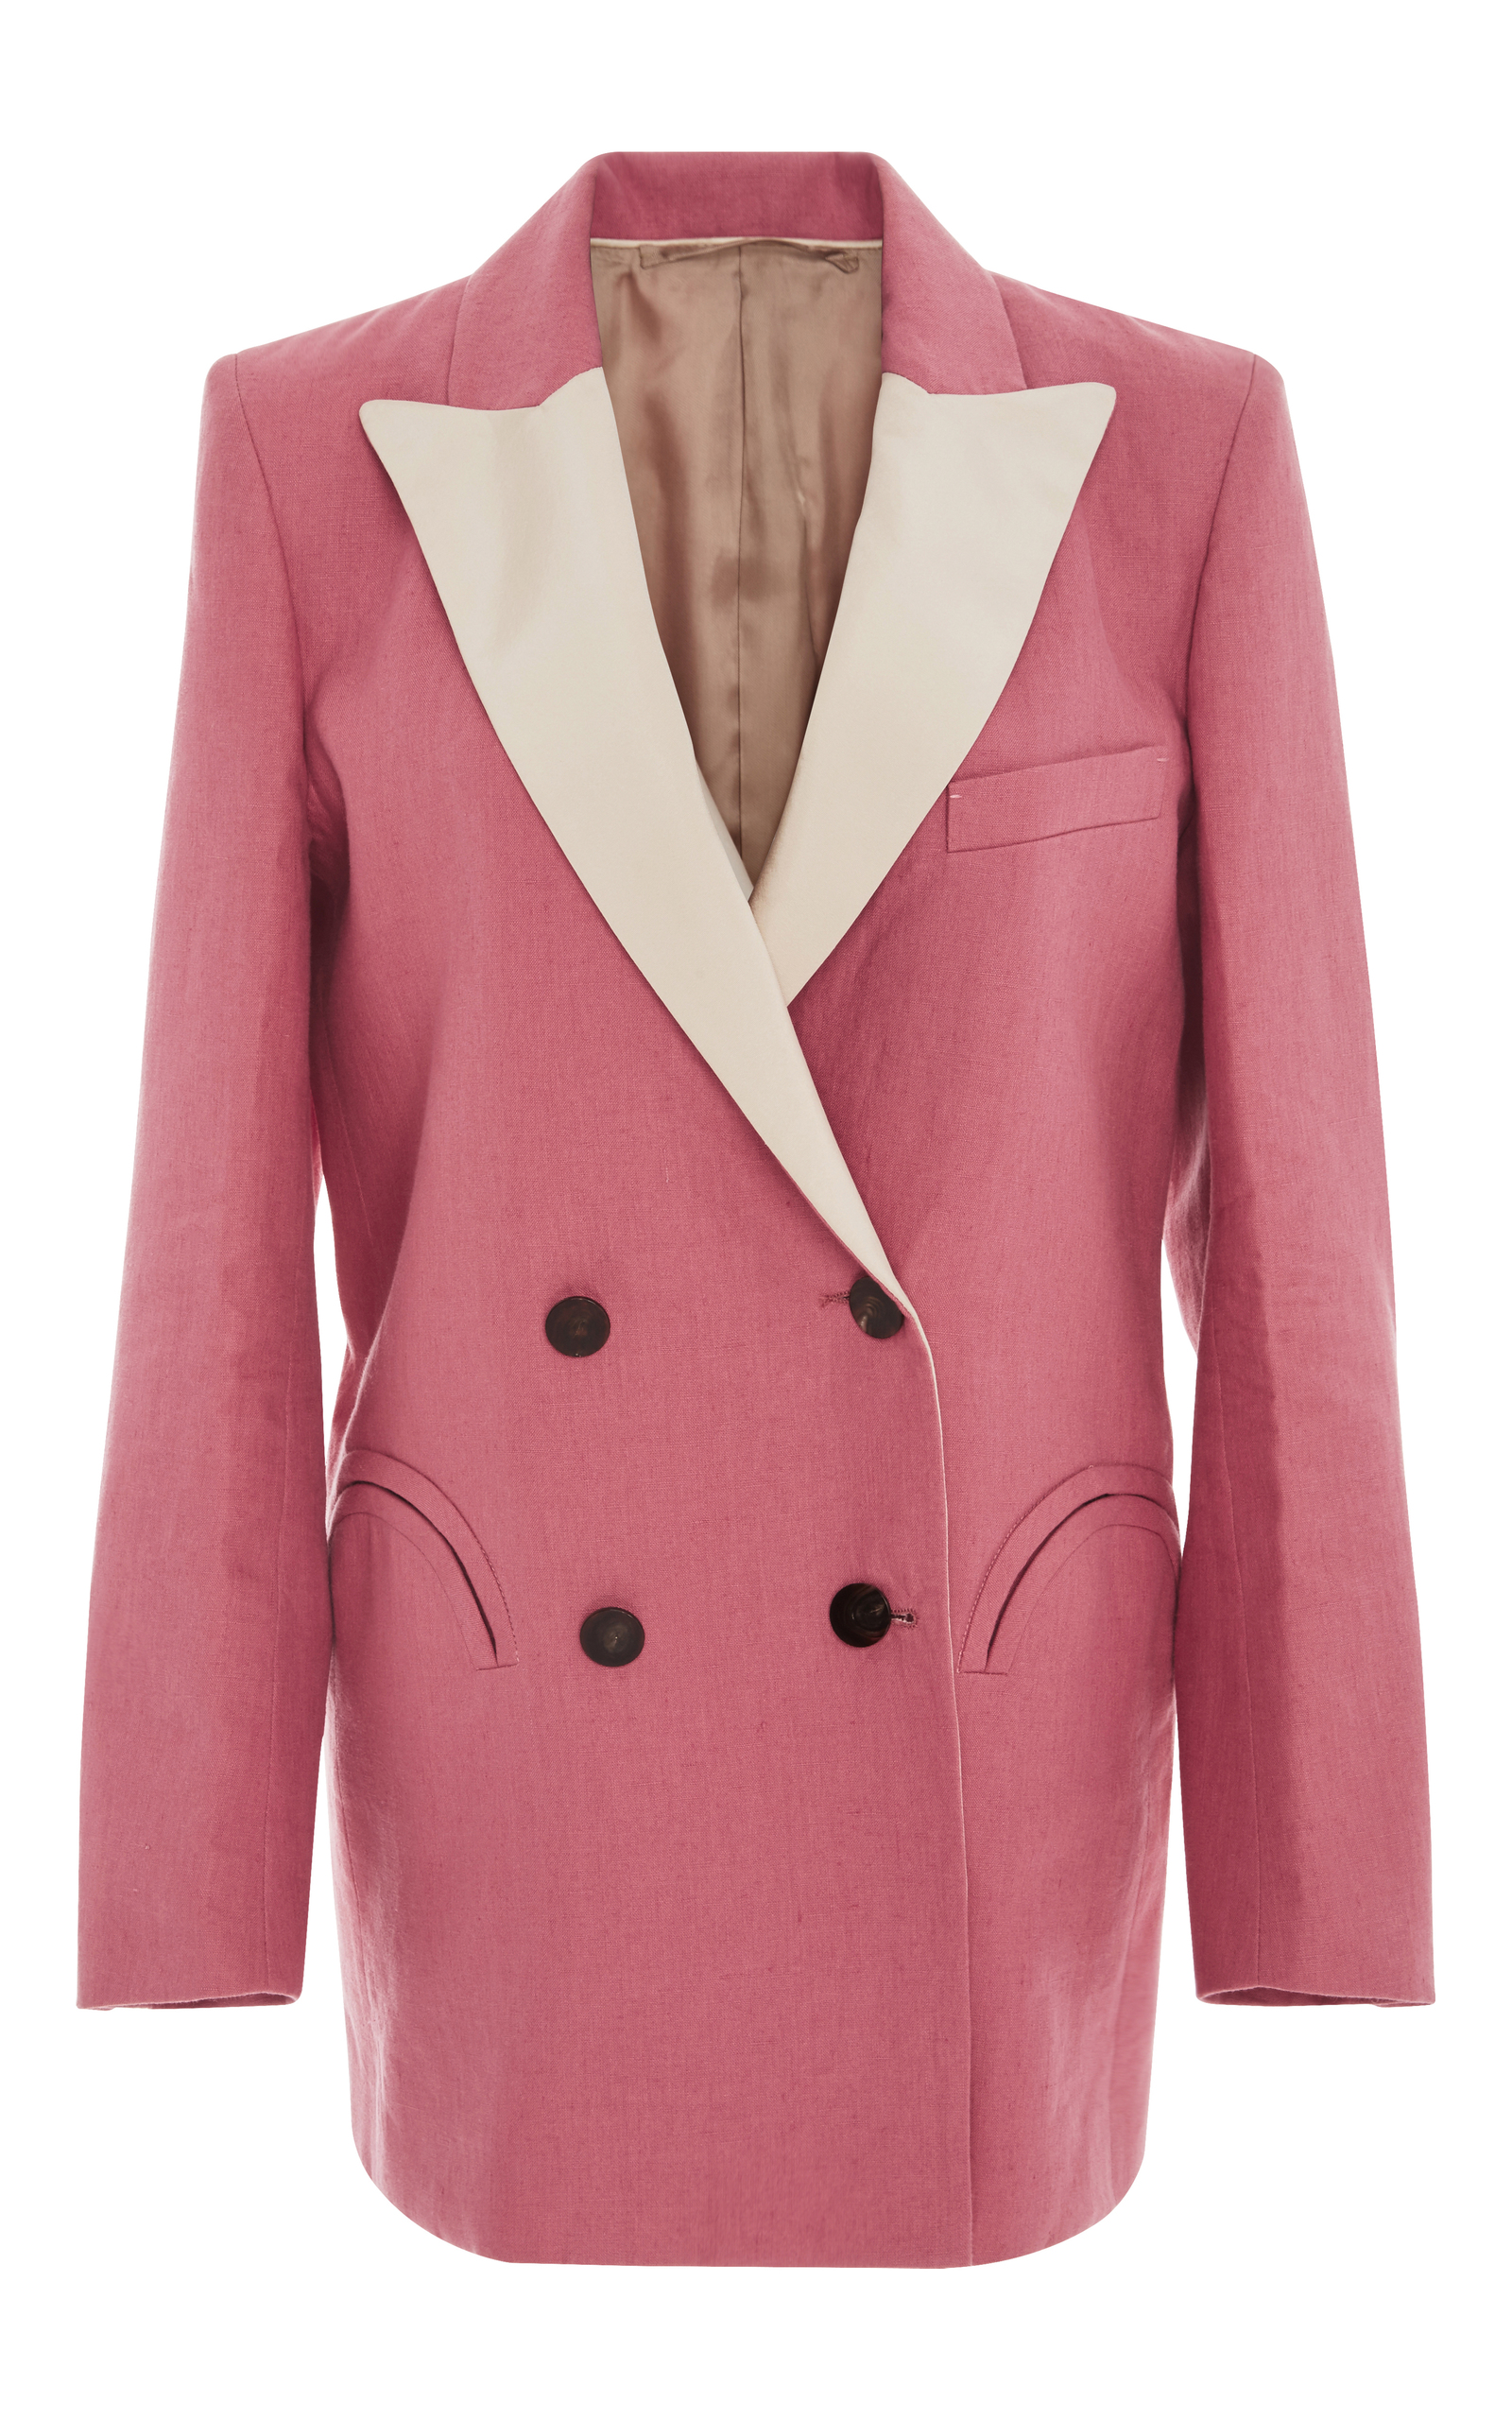 Blazé Milano MID-DAY SUN DOUBLE BREASTED CONTRAST LAPEL BLAZER